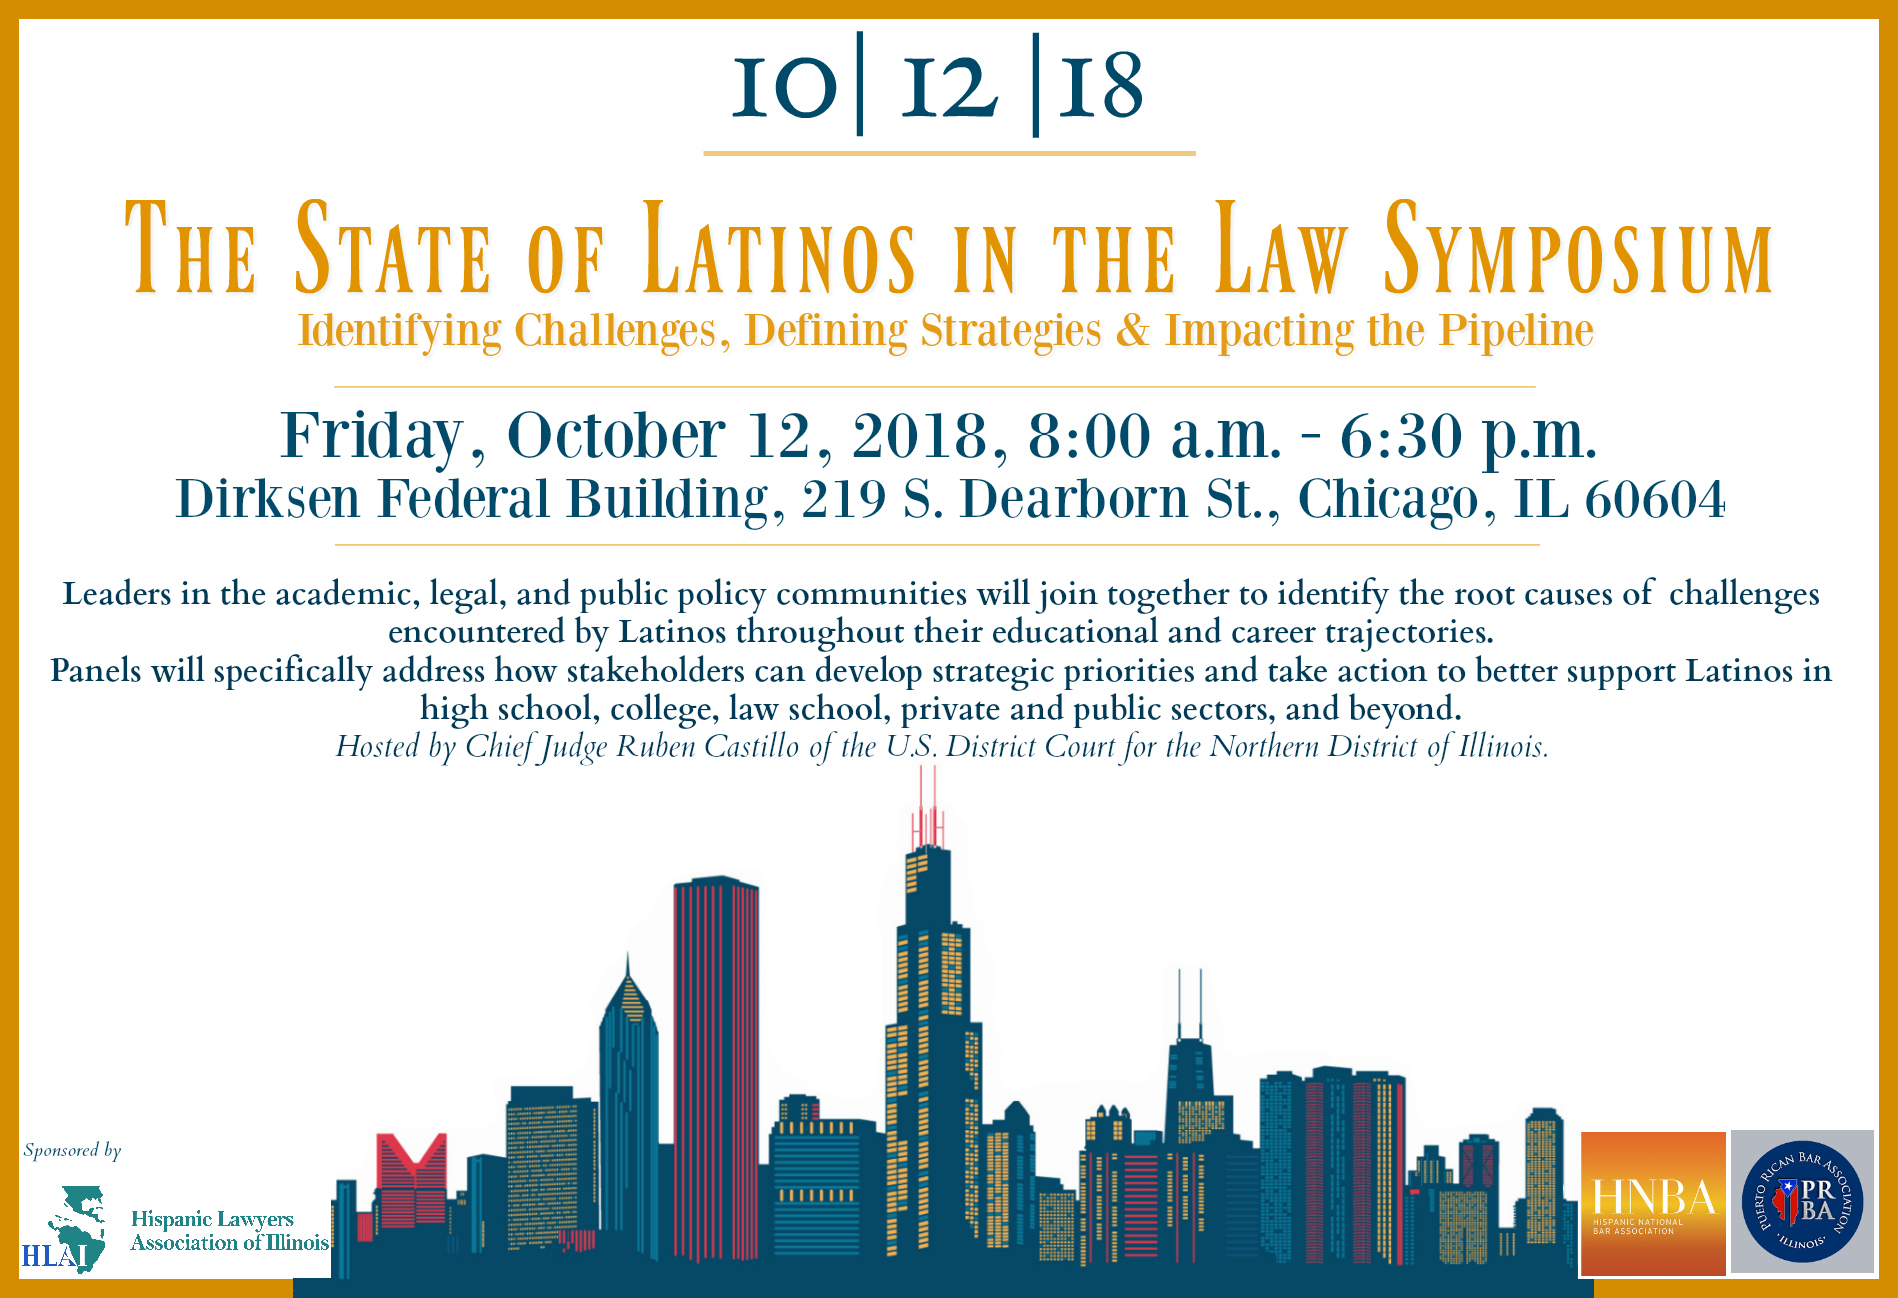 THE STATE OF LATINOS IN THE LAW SYMPOSIUM PROGRAM